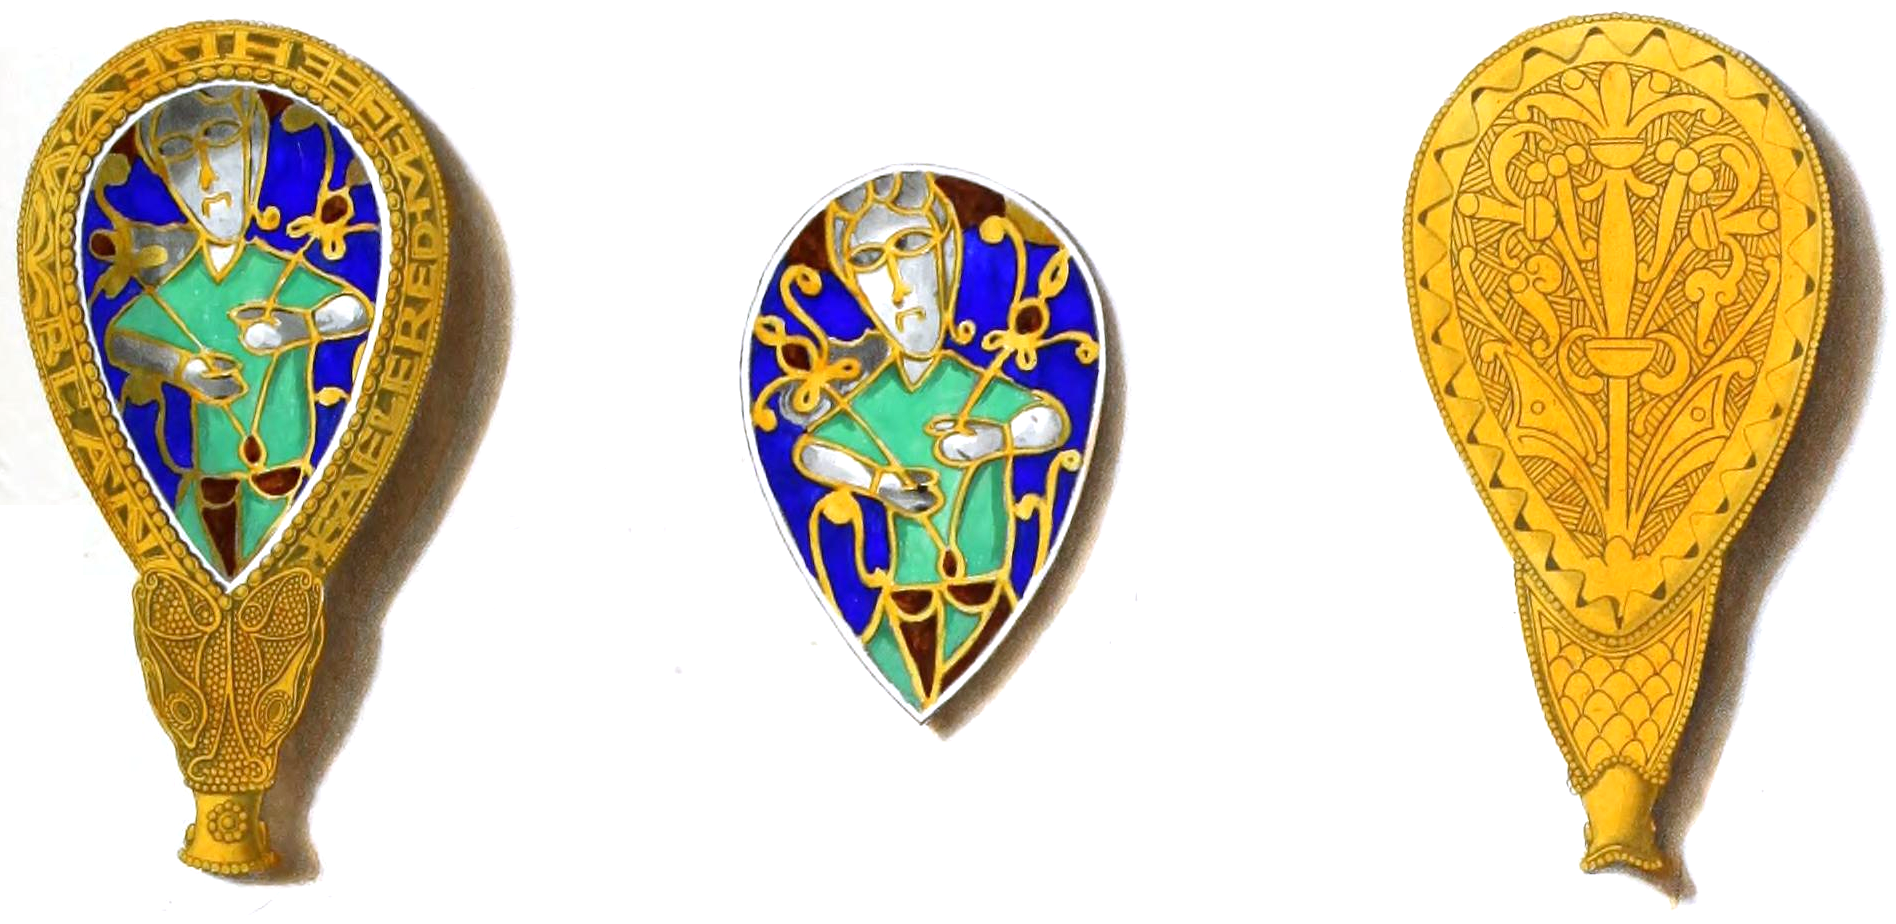 https://upload.wikimedia.org/wikipedia/commons/9/9b/King_Alfred%E2%80%99s_Jewel%E2%80%94front%2C_enamel%2C_back.png